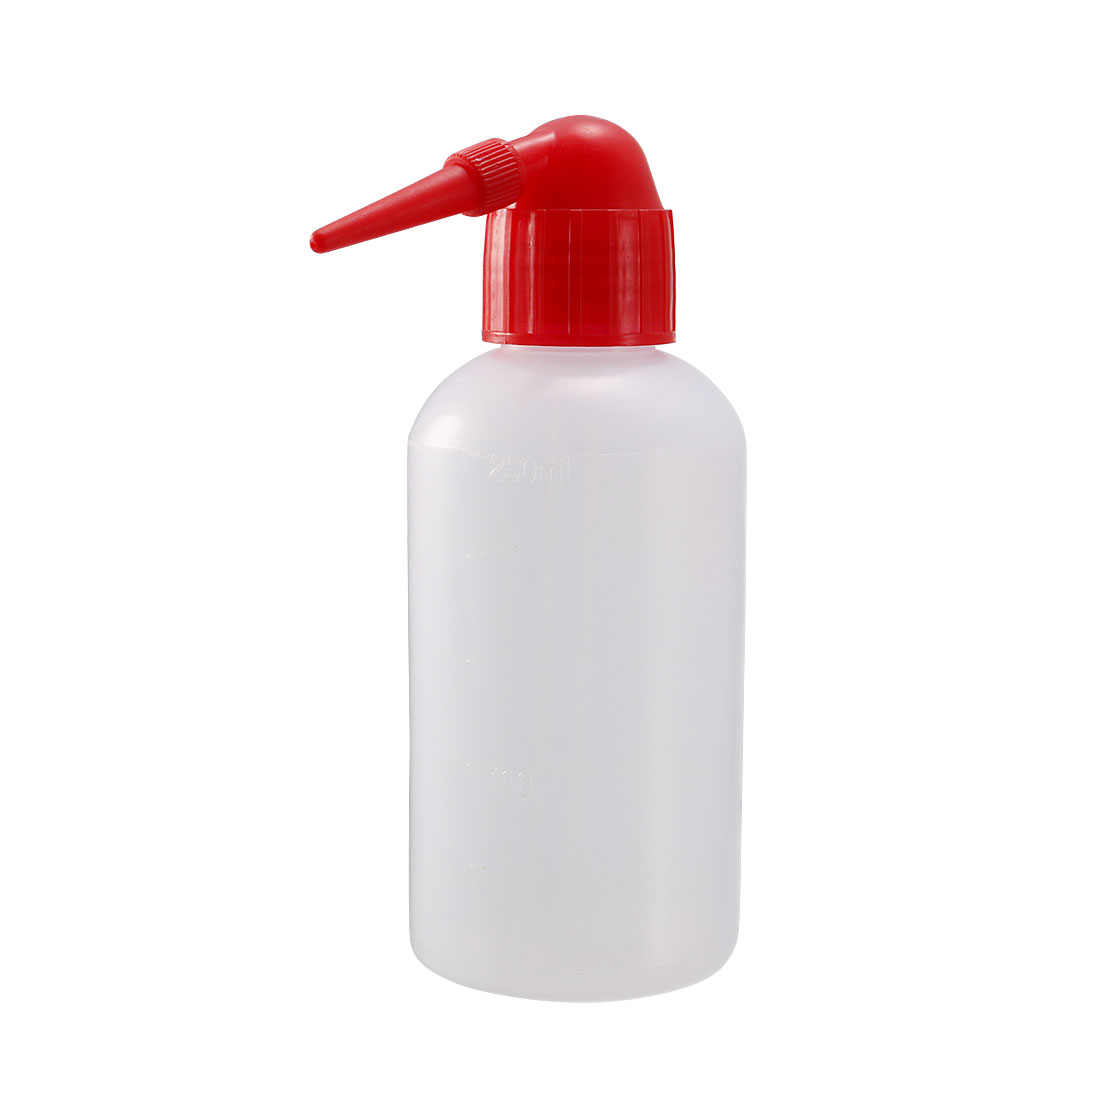 250mL Red Cover Tip Plastic Cleaning Alcohol Container Tattoo Wash Squeeze Bottle